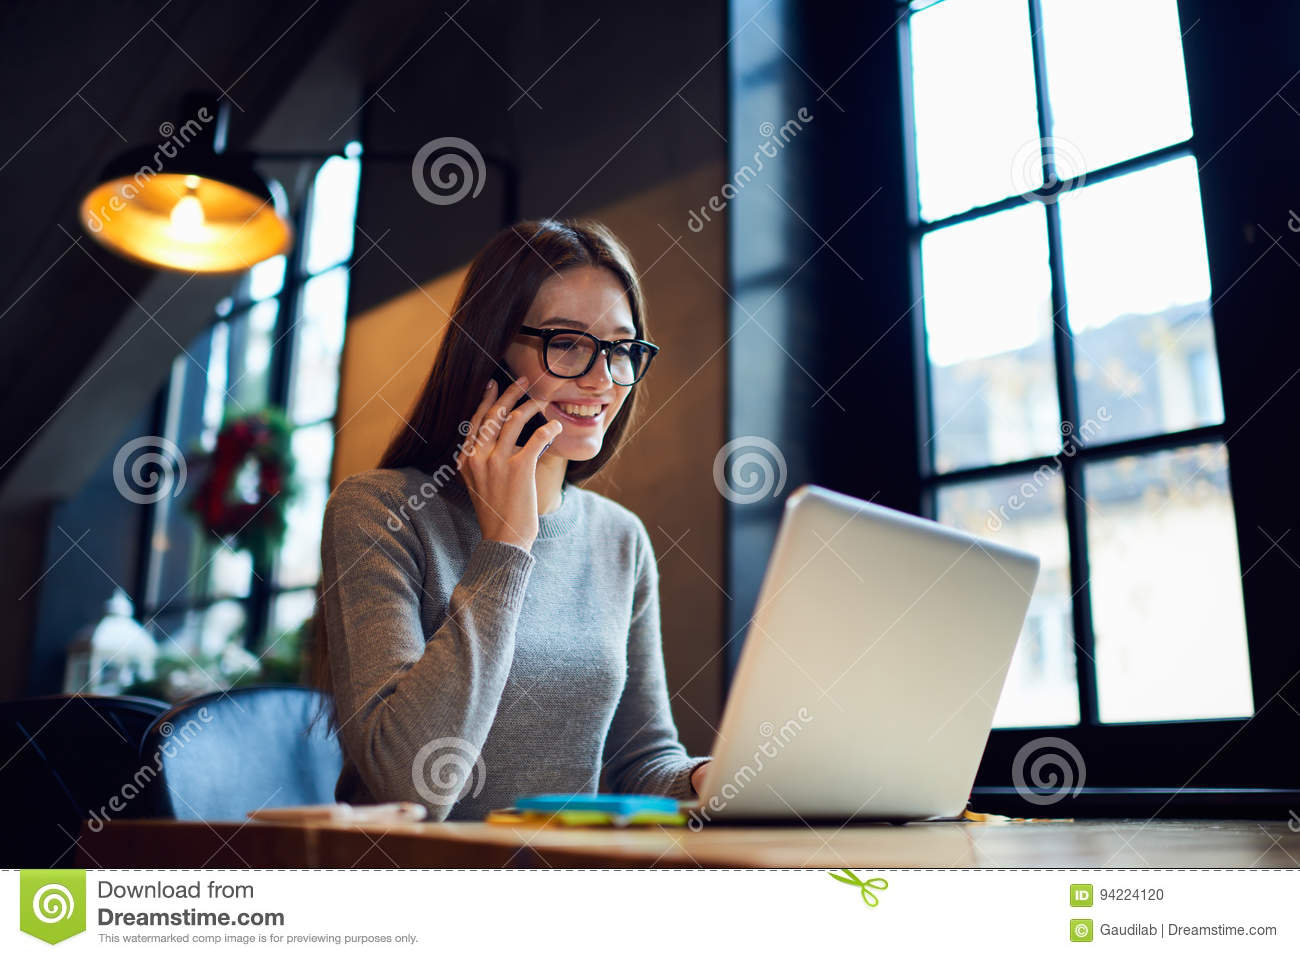 People At Work Talking On Phone With Friend Greeting Stock Photo